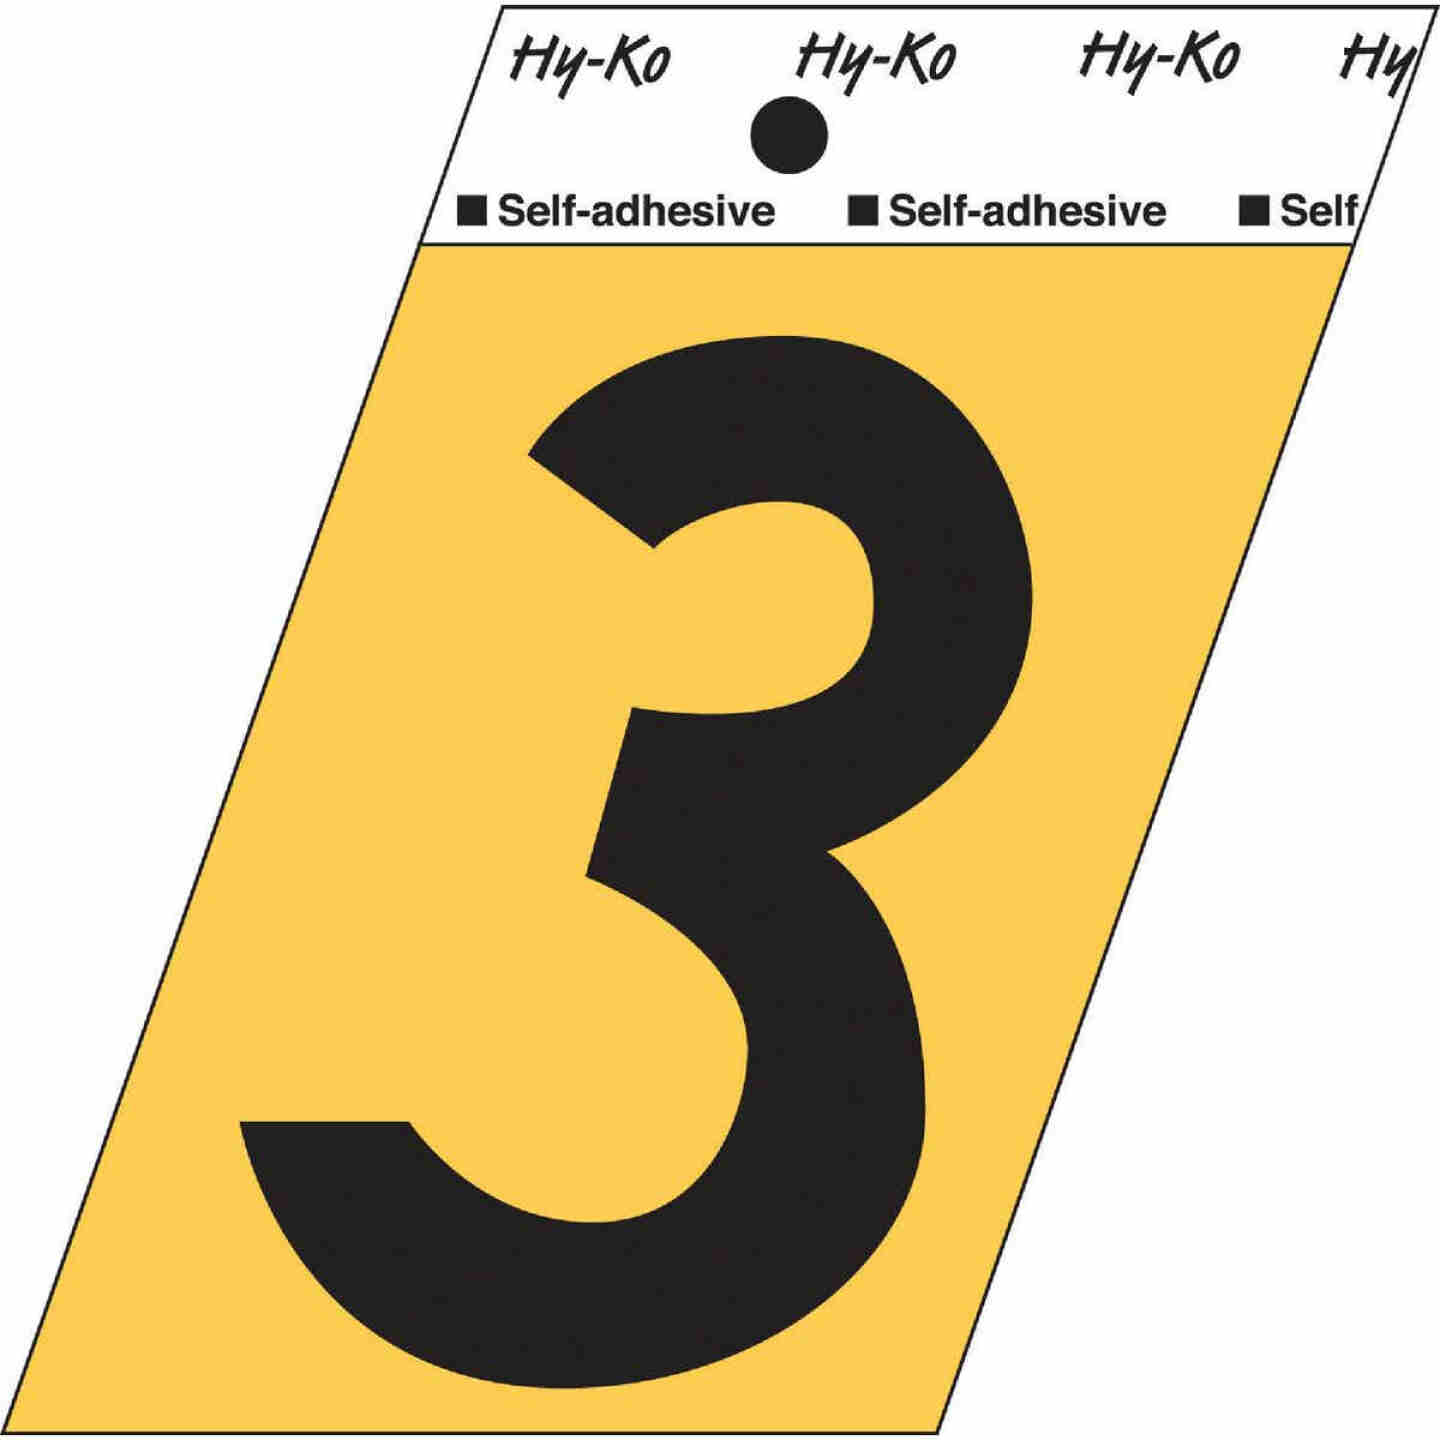 Hy-Ko Aluminum 3-1/2 In. Non-Reflective Adhesive Number Three Image 1